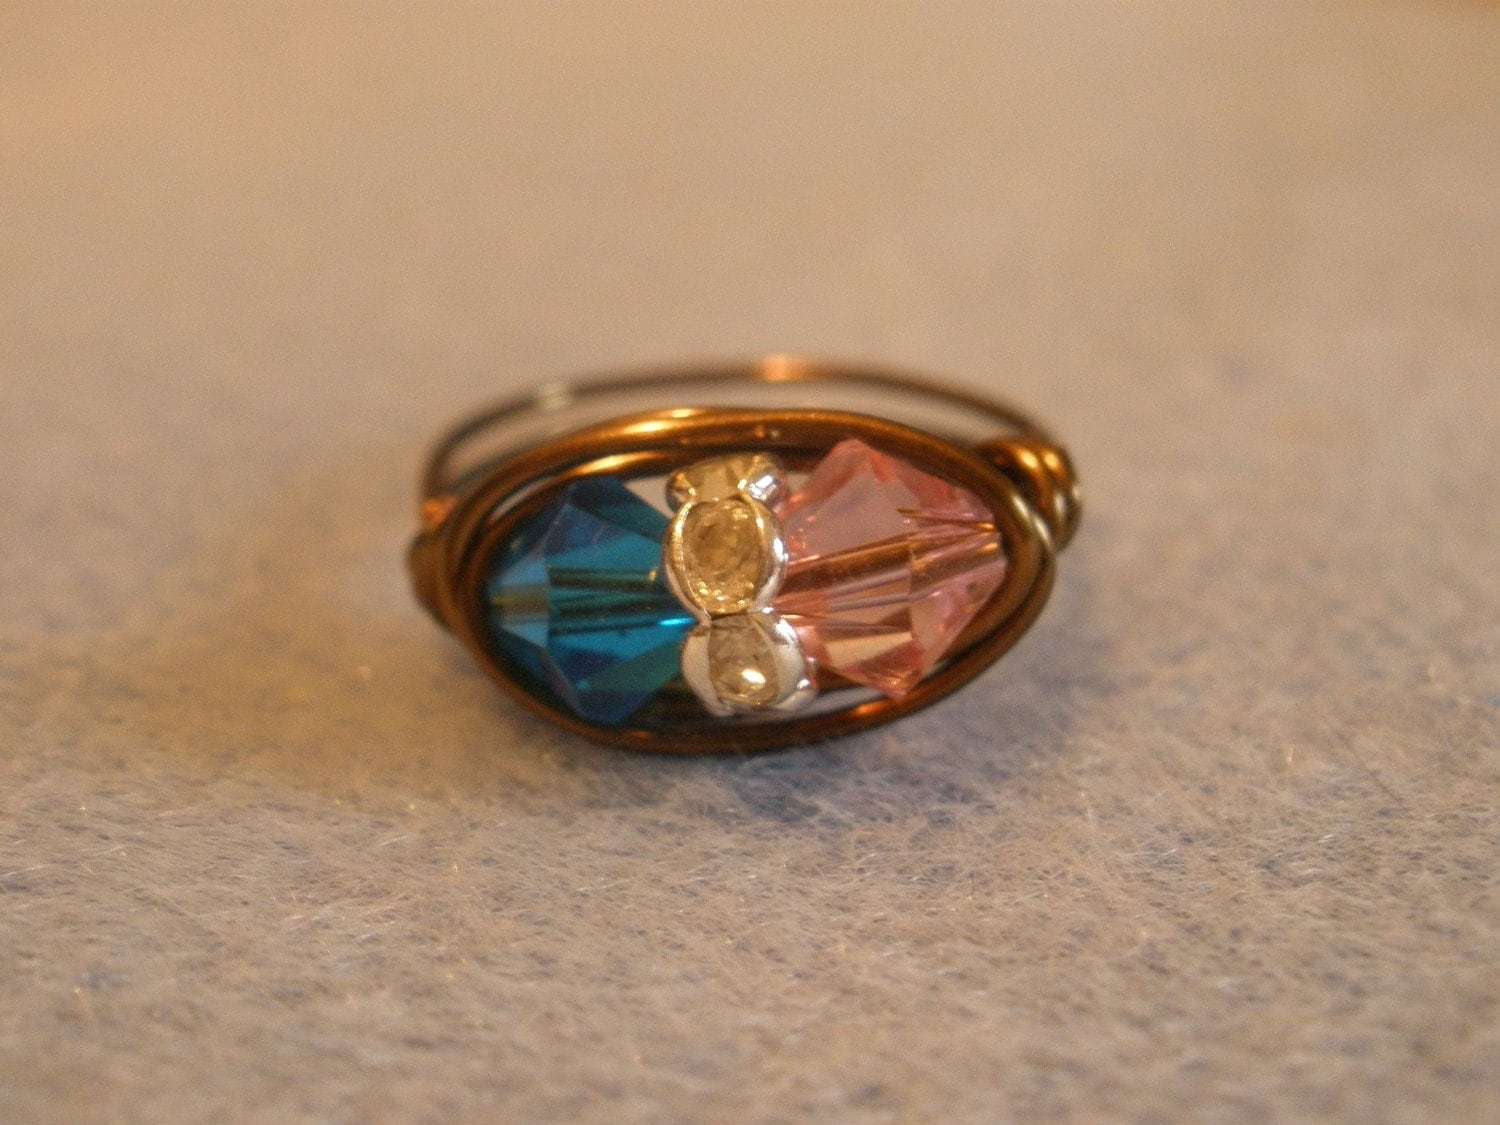 Delta Gamma Hand Wrapped Ring in Pink, Blue, and Bronze